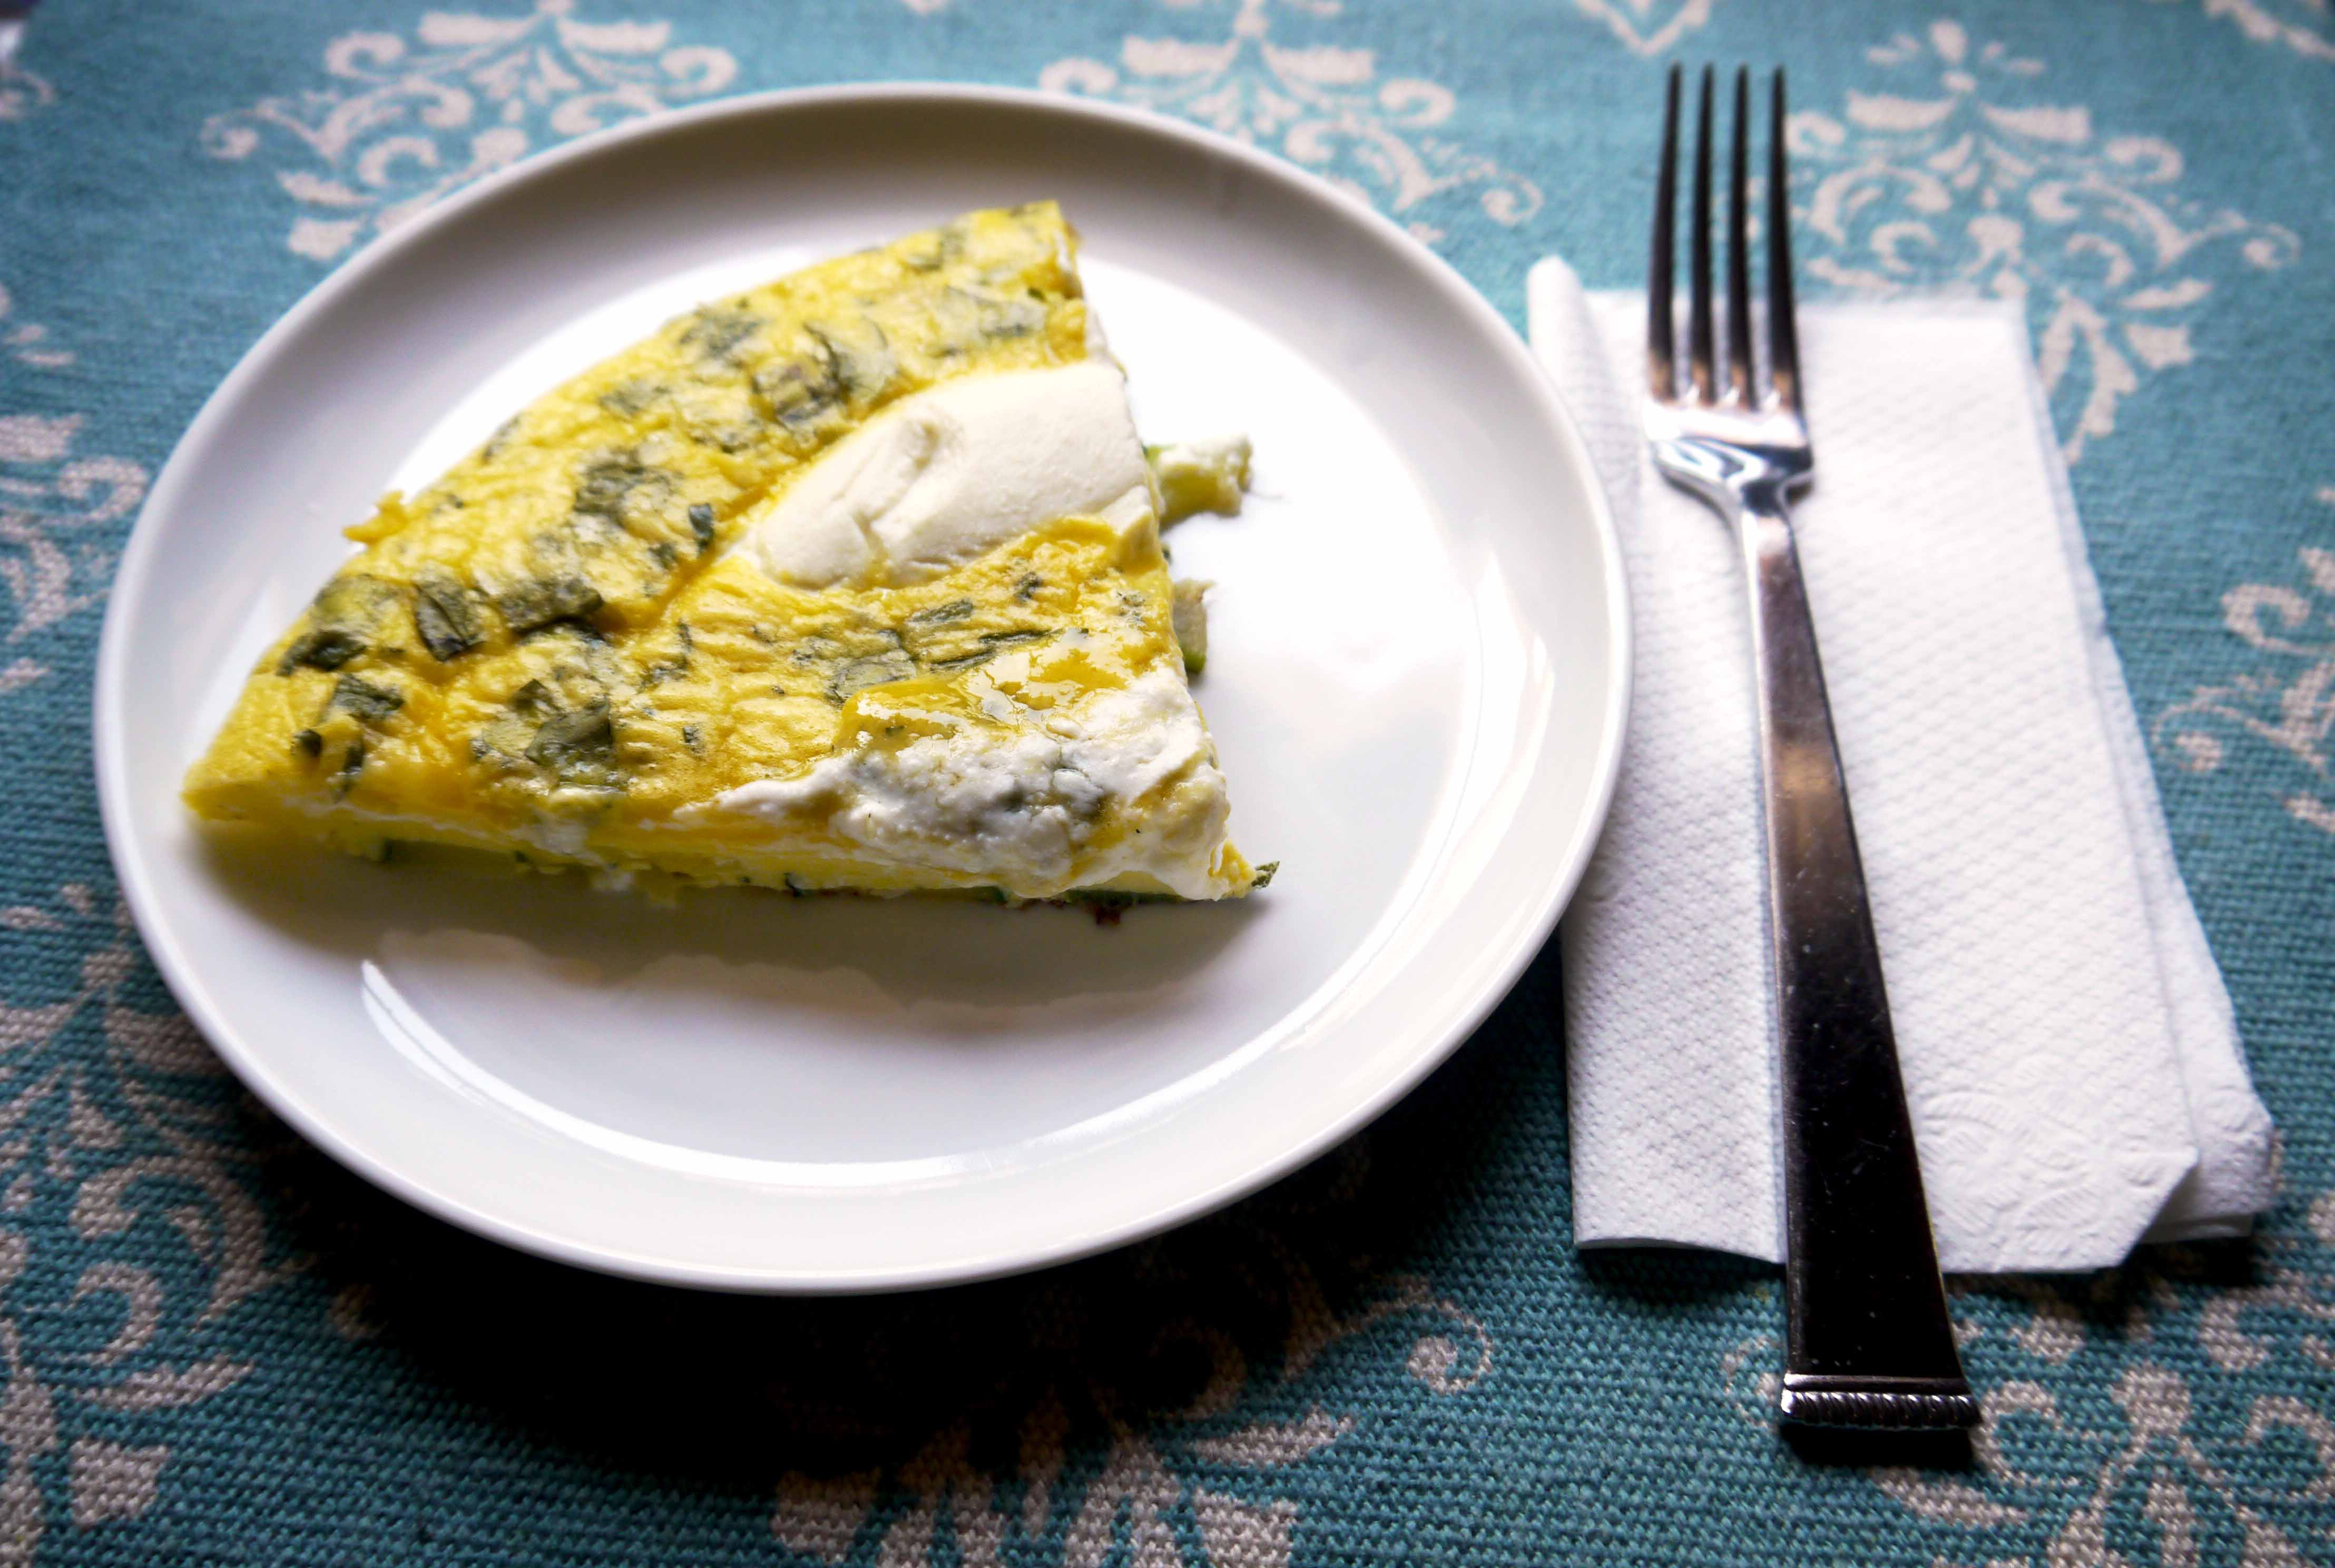 A slice of frittata on a plate.